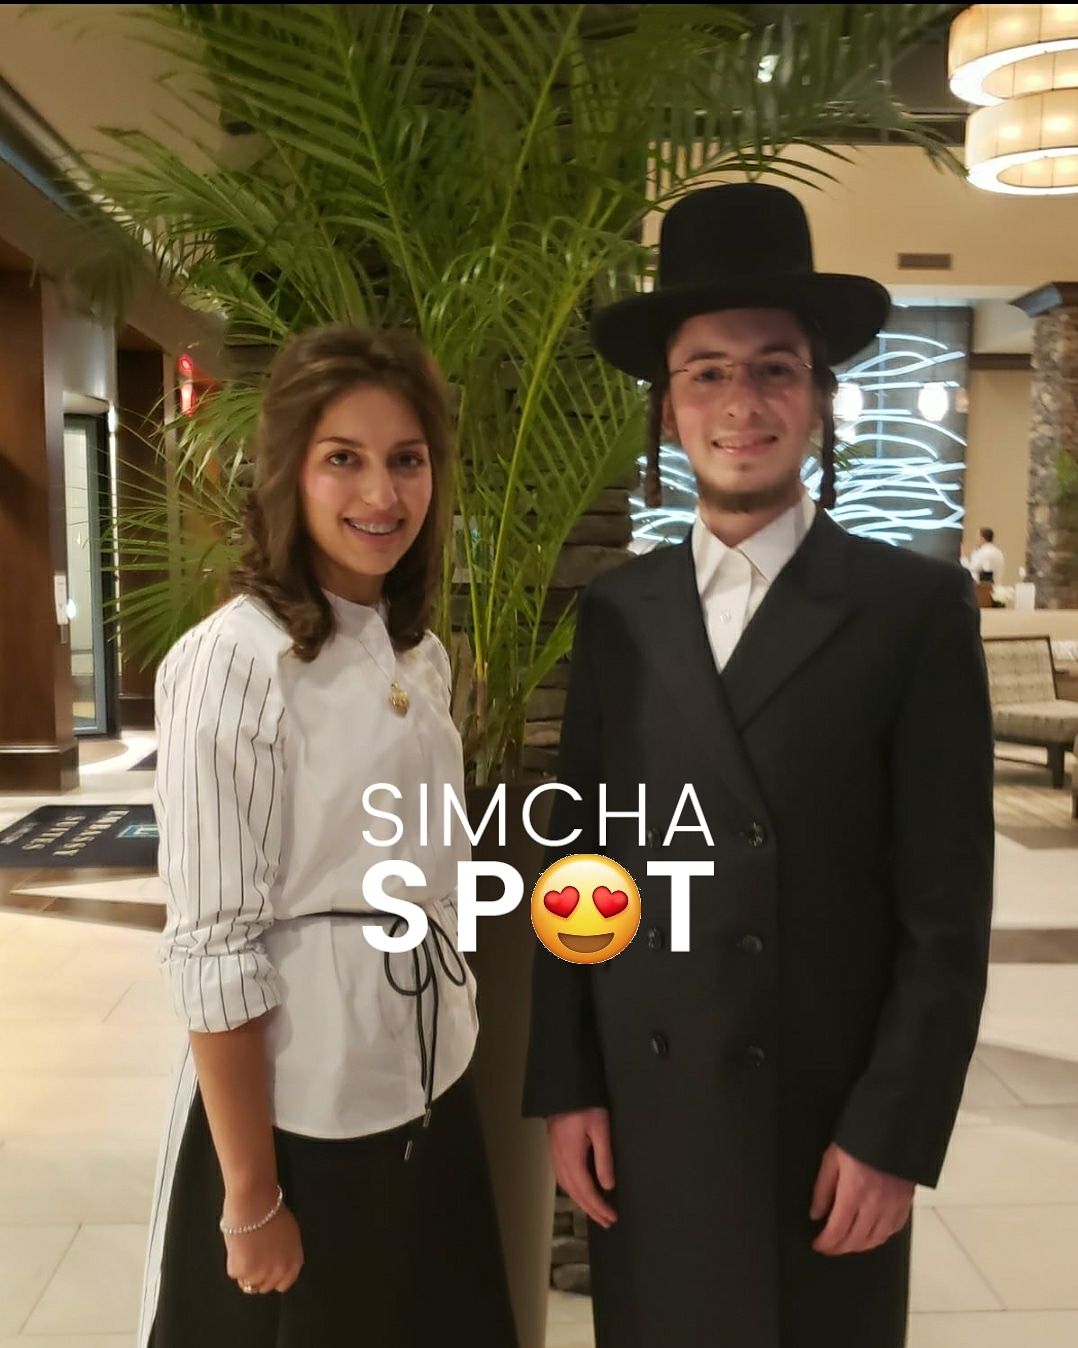 Engagement Of Yumy Mezai To Esty Blumenthal Simcha Spot Simchaspot (@simchaspot) is on instagram. yumy mezai to esty blumenthal simcha spot